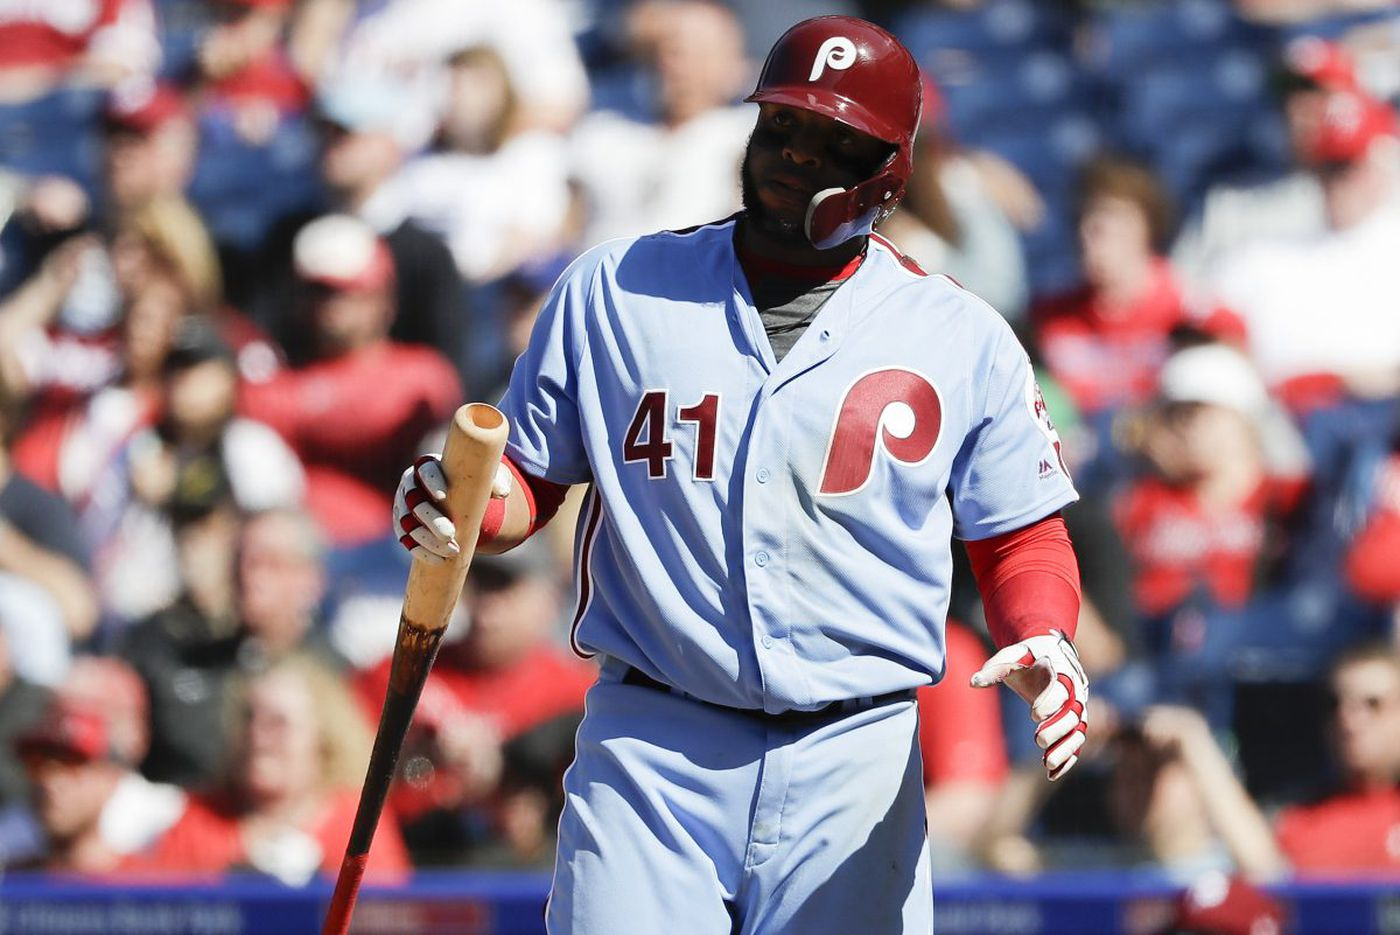 Phillies' Carlos Santana trying to break his funk like Aaron Altherr did